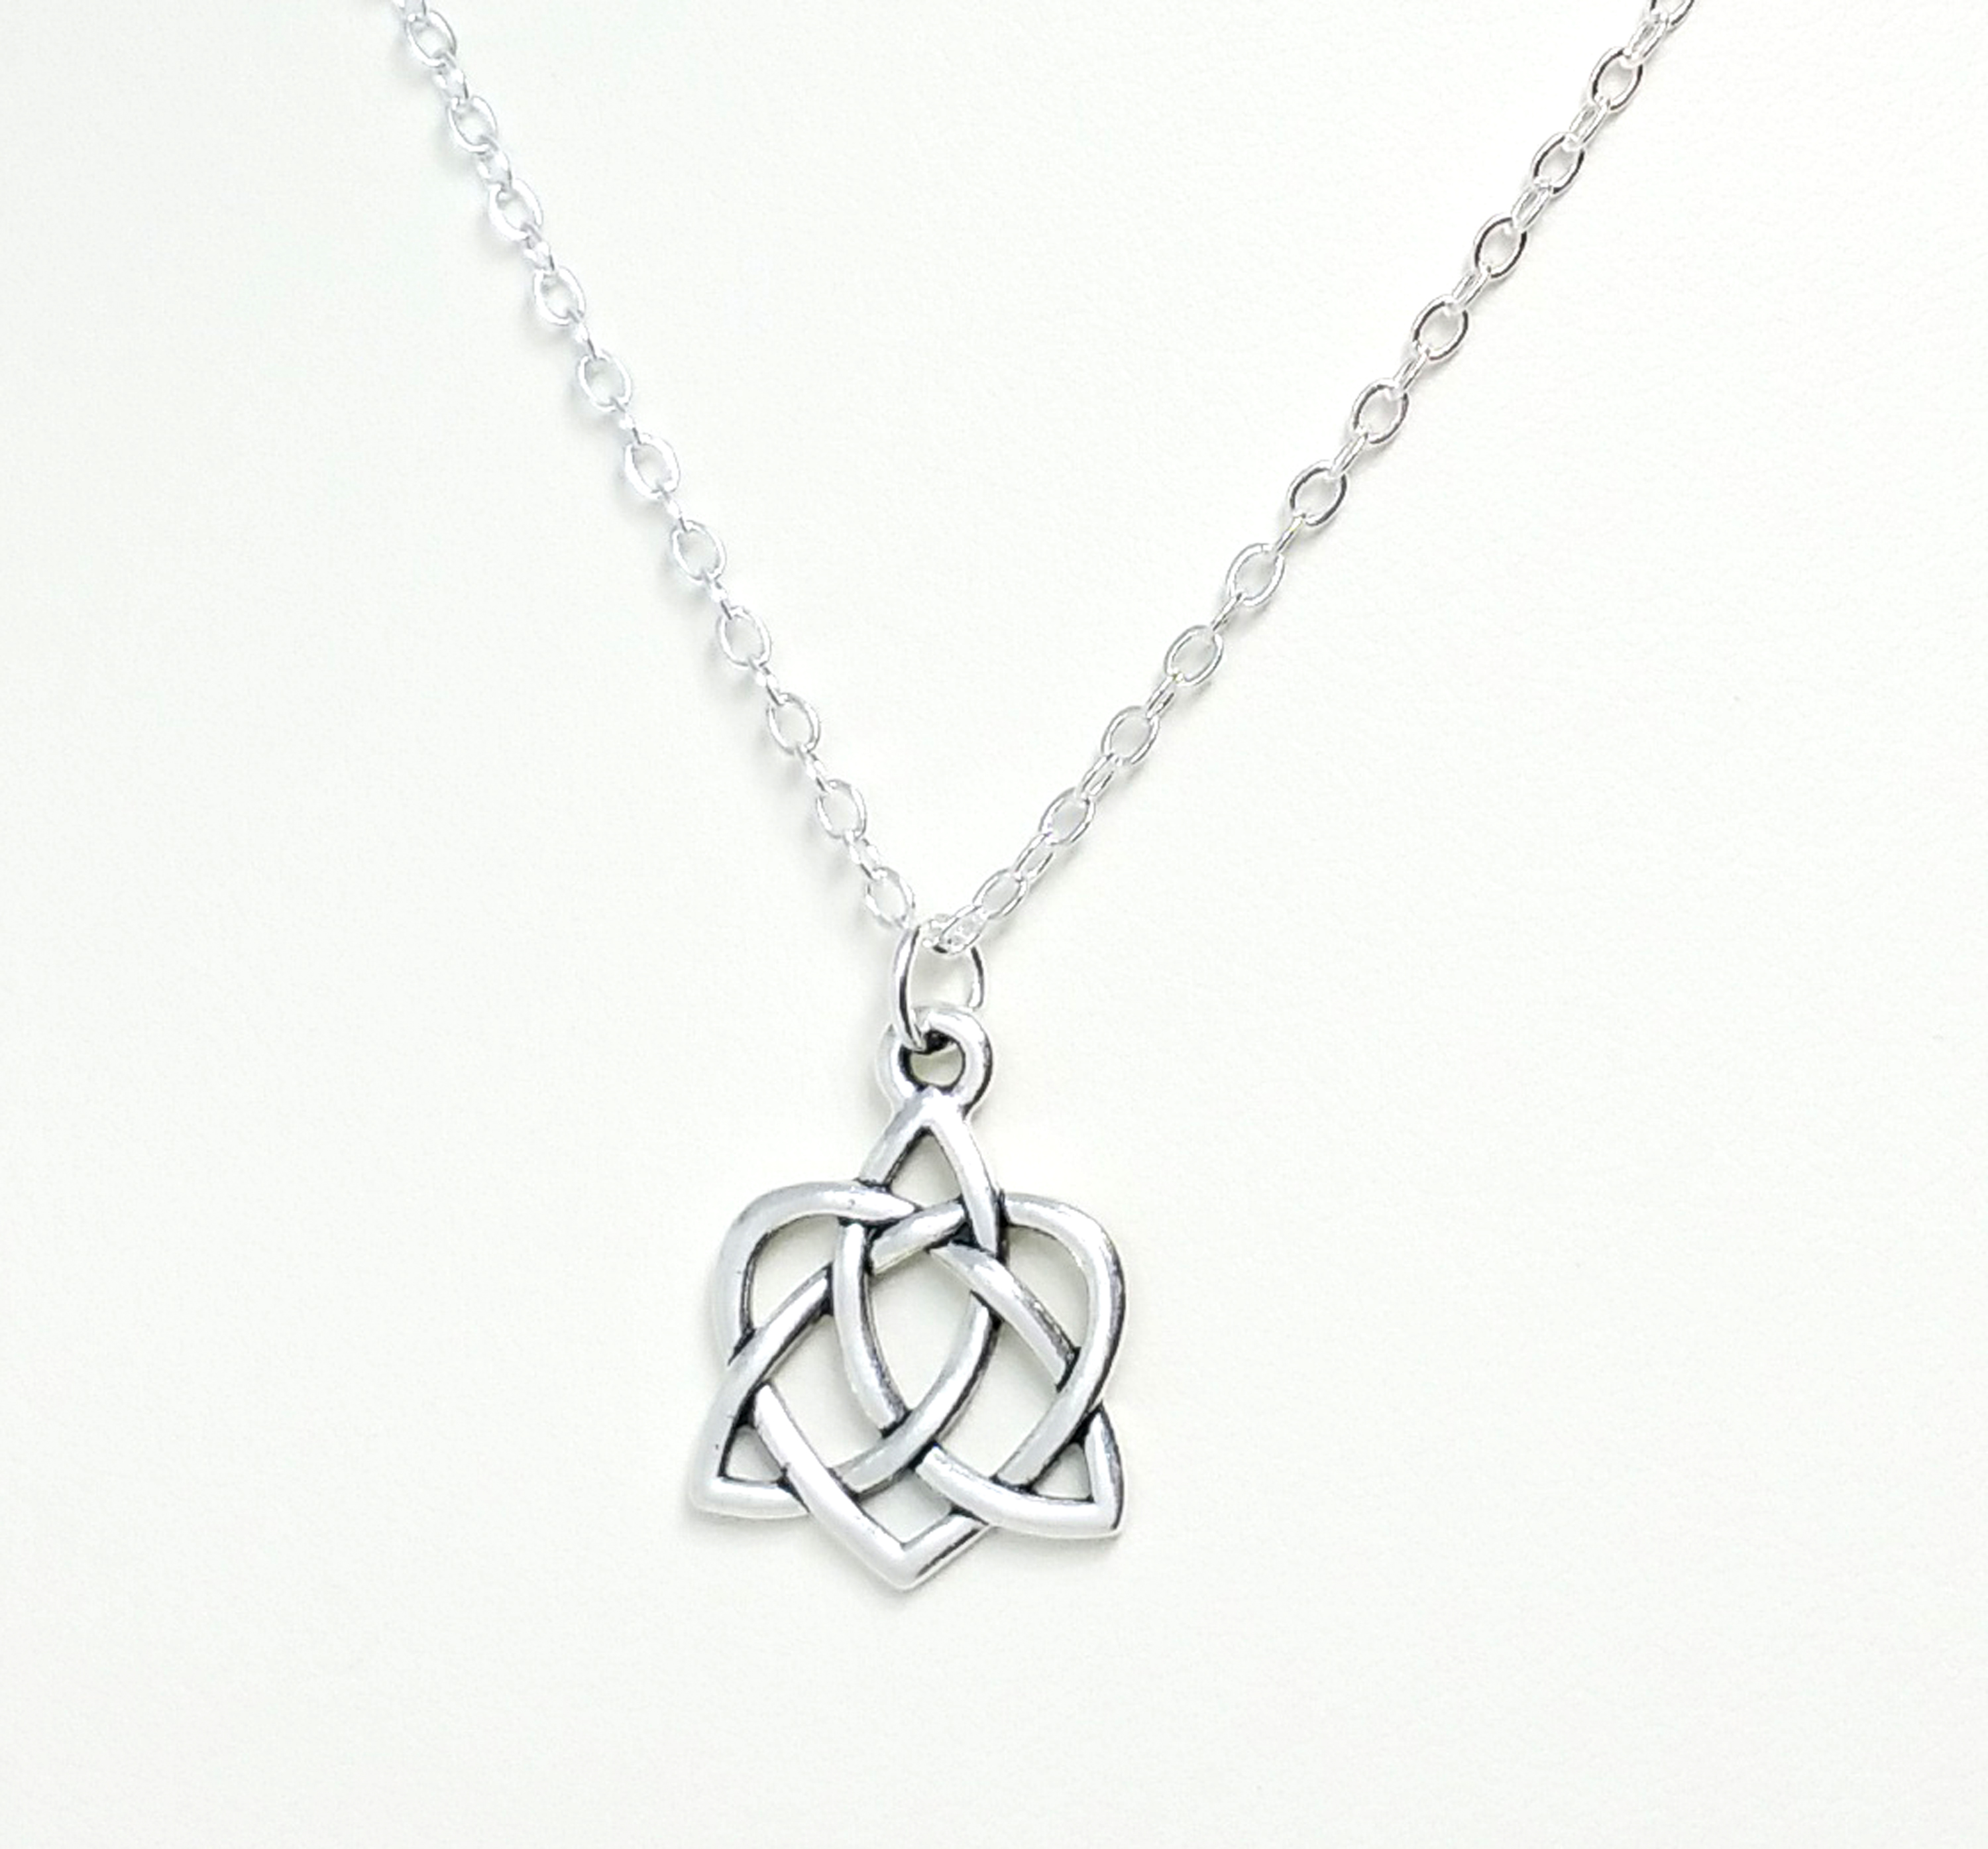 celtic leaf pendant design steel stainless three clover necklace